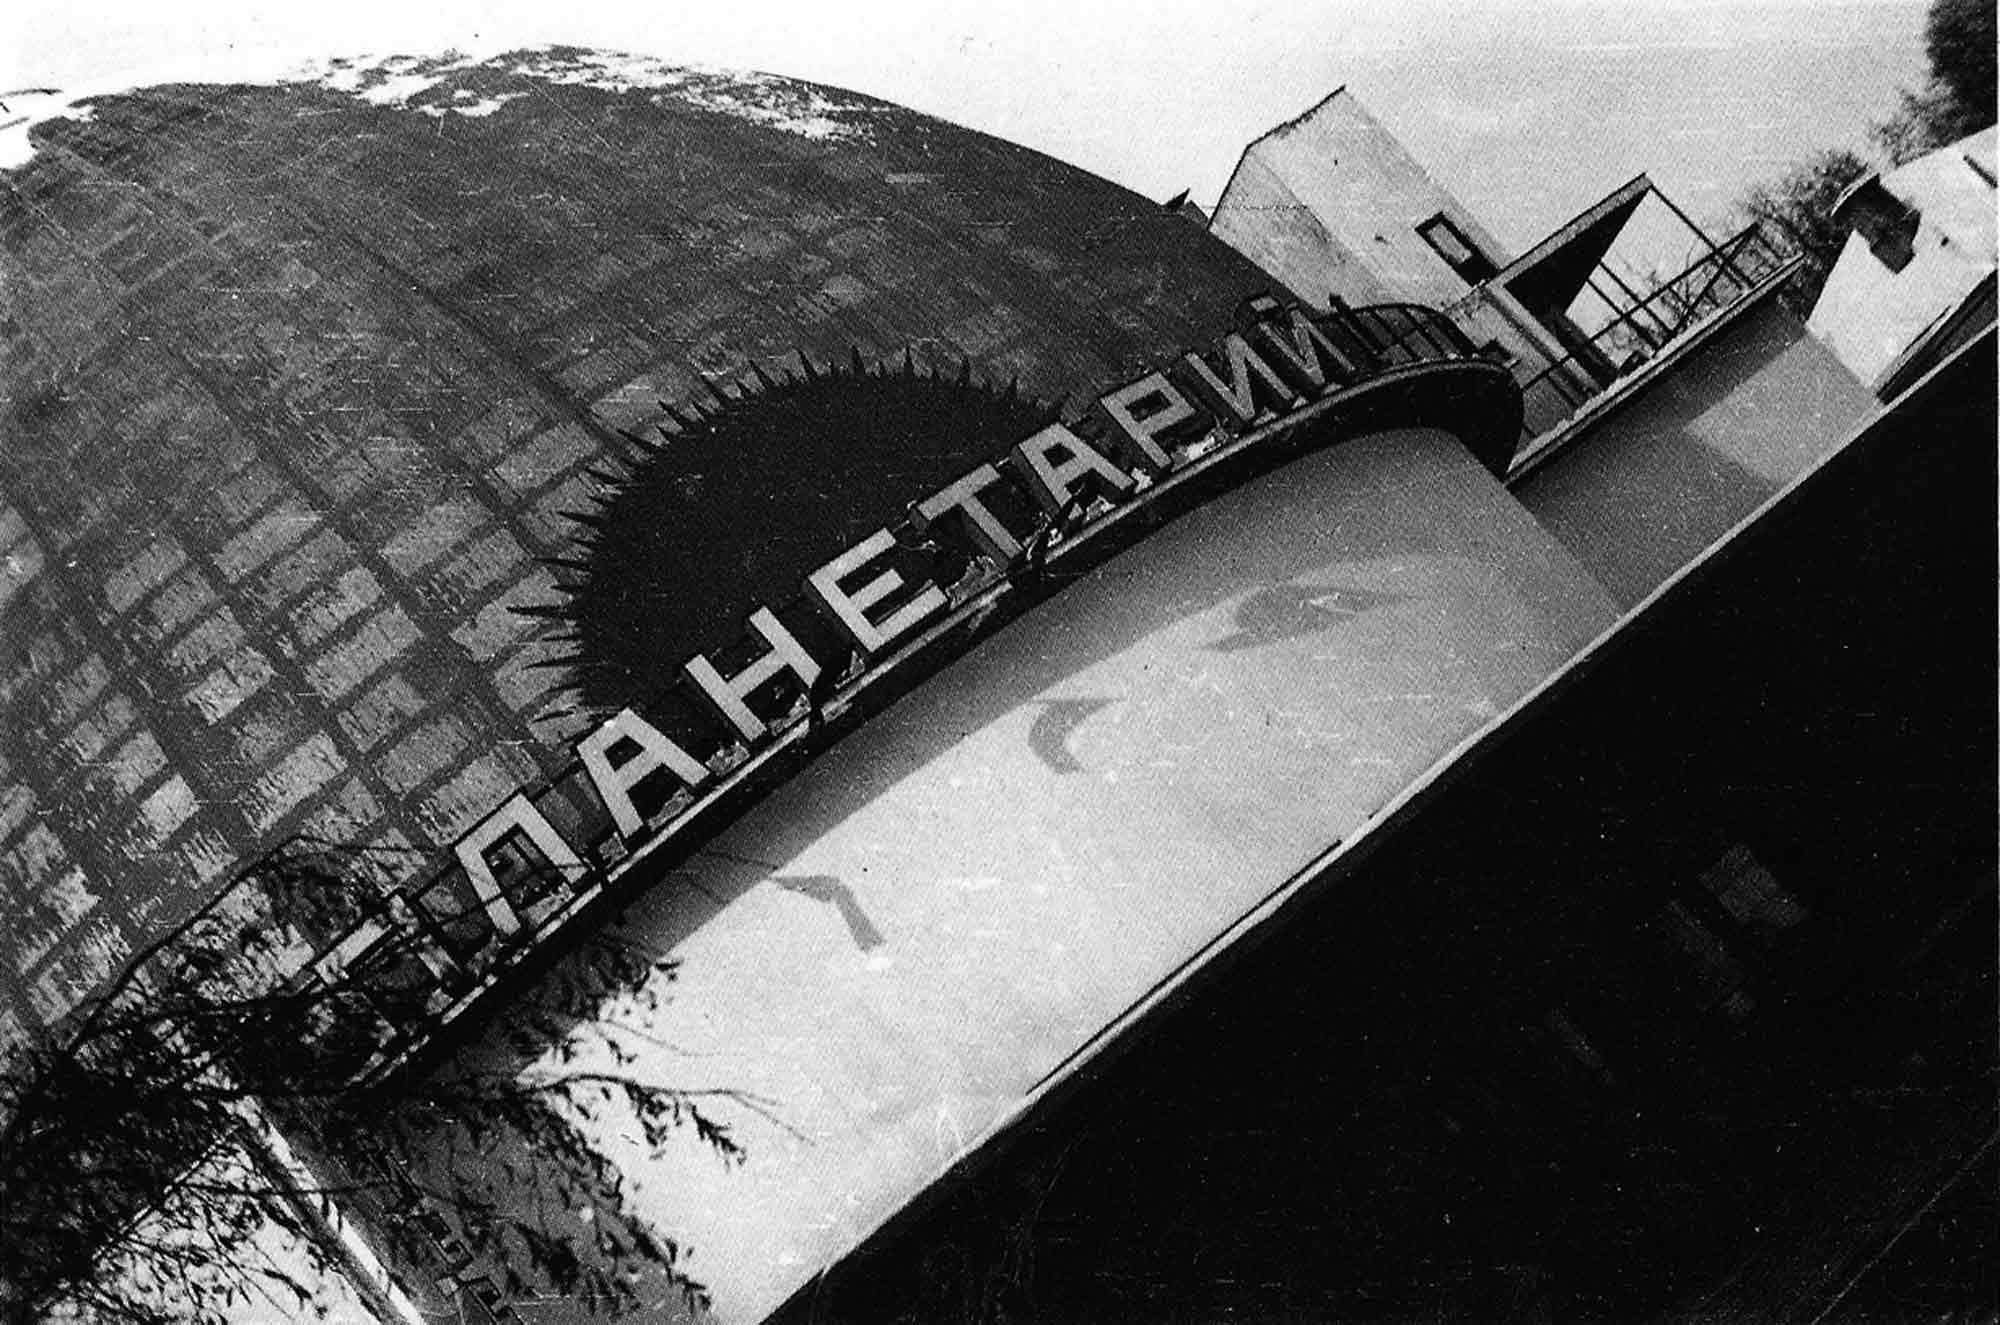 Aleksandr-Rodchenko-Photo_012